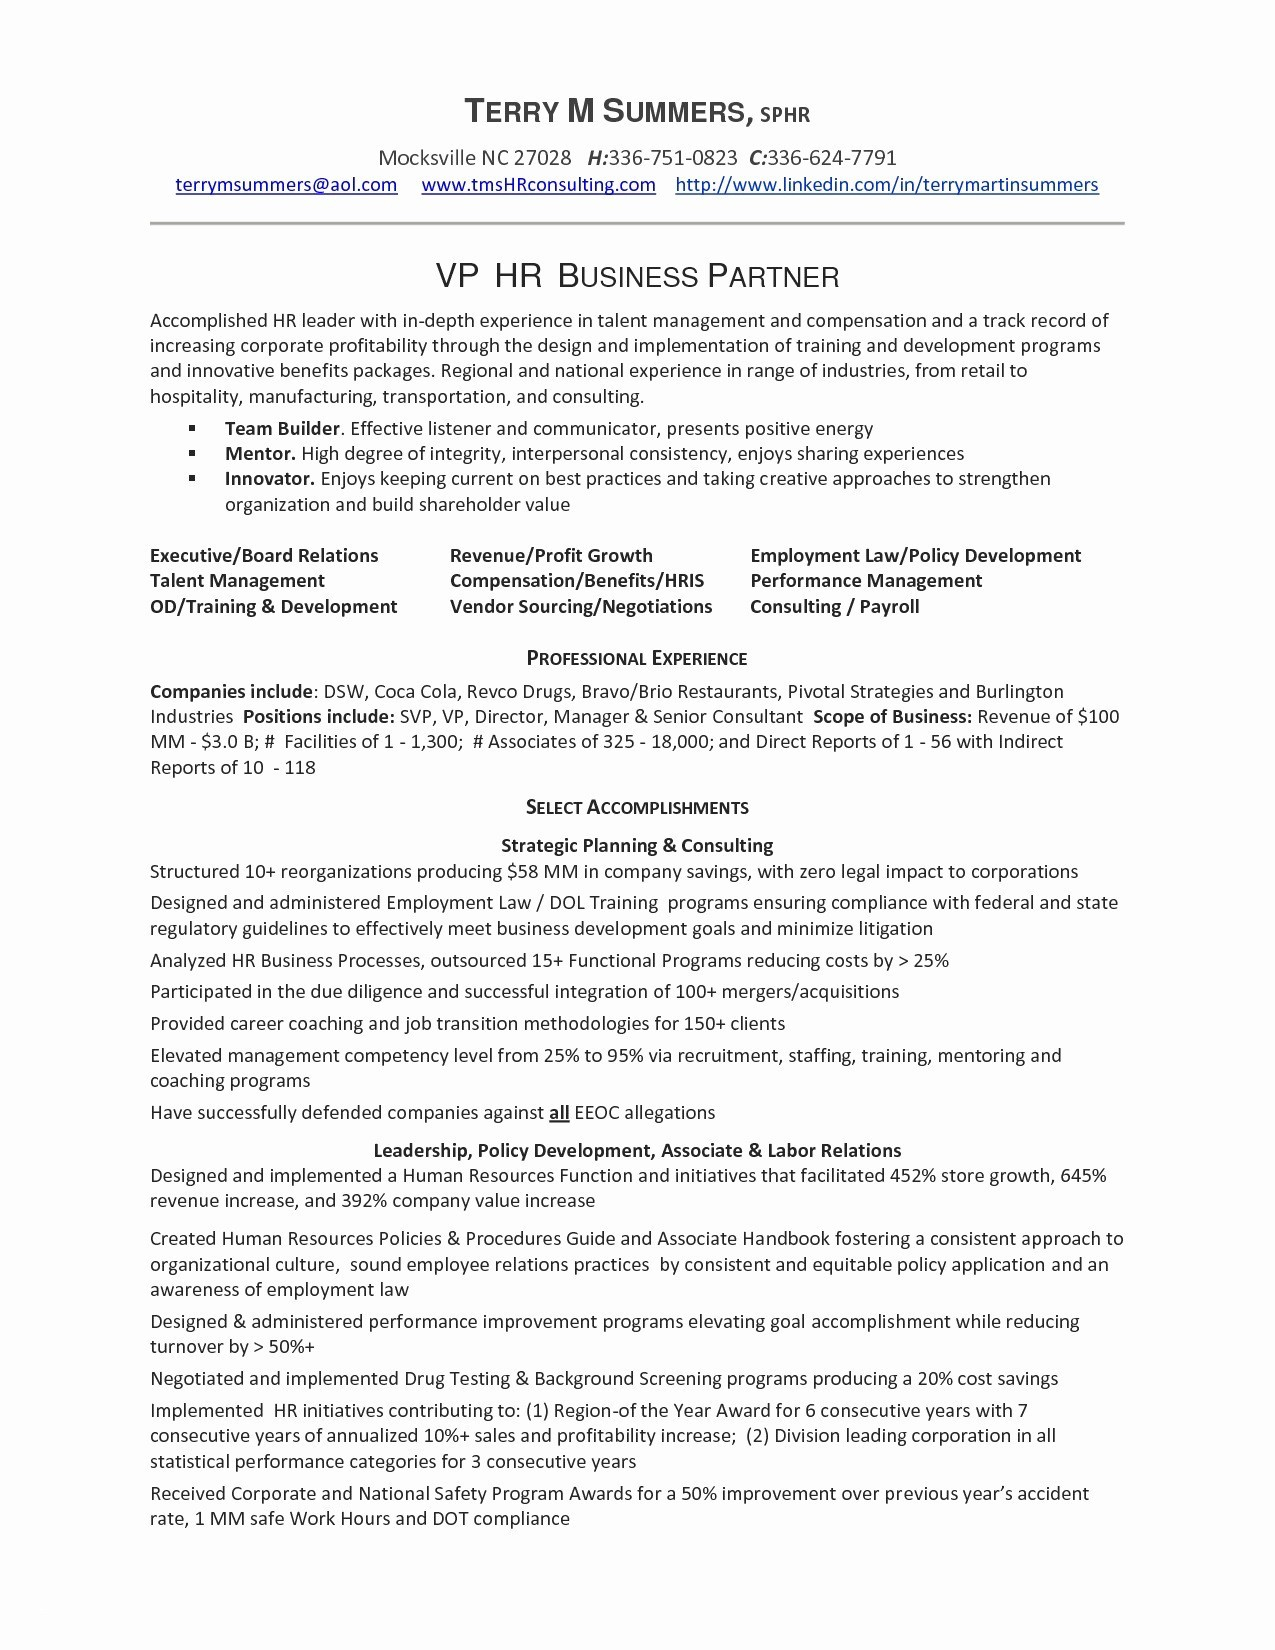 Dental Hygiene Resume Examples - Dental Hygiene Resume Sample